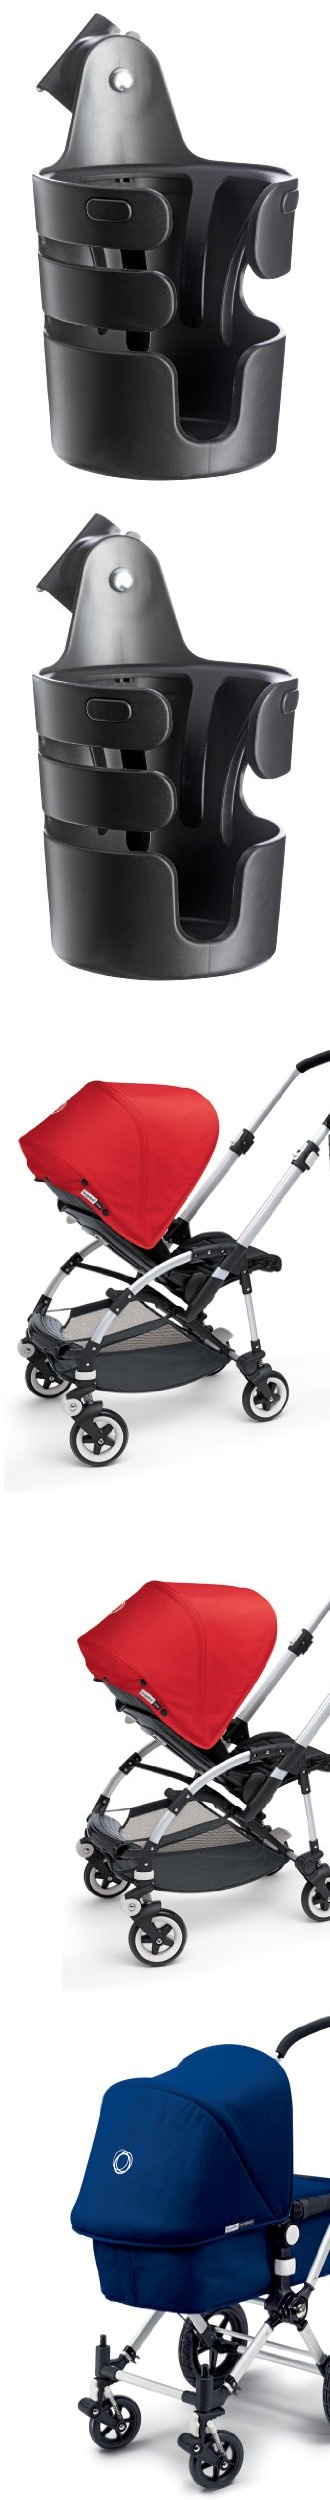 75 best Baby Accessories images on Pinterest   Car seats, Kid ...